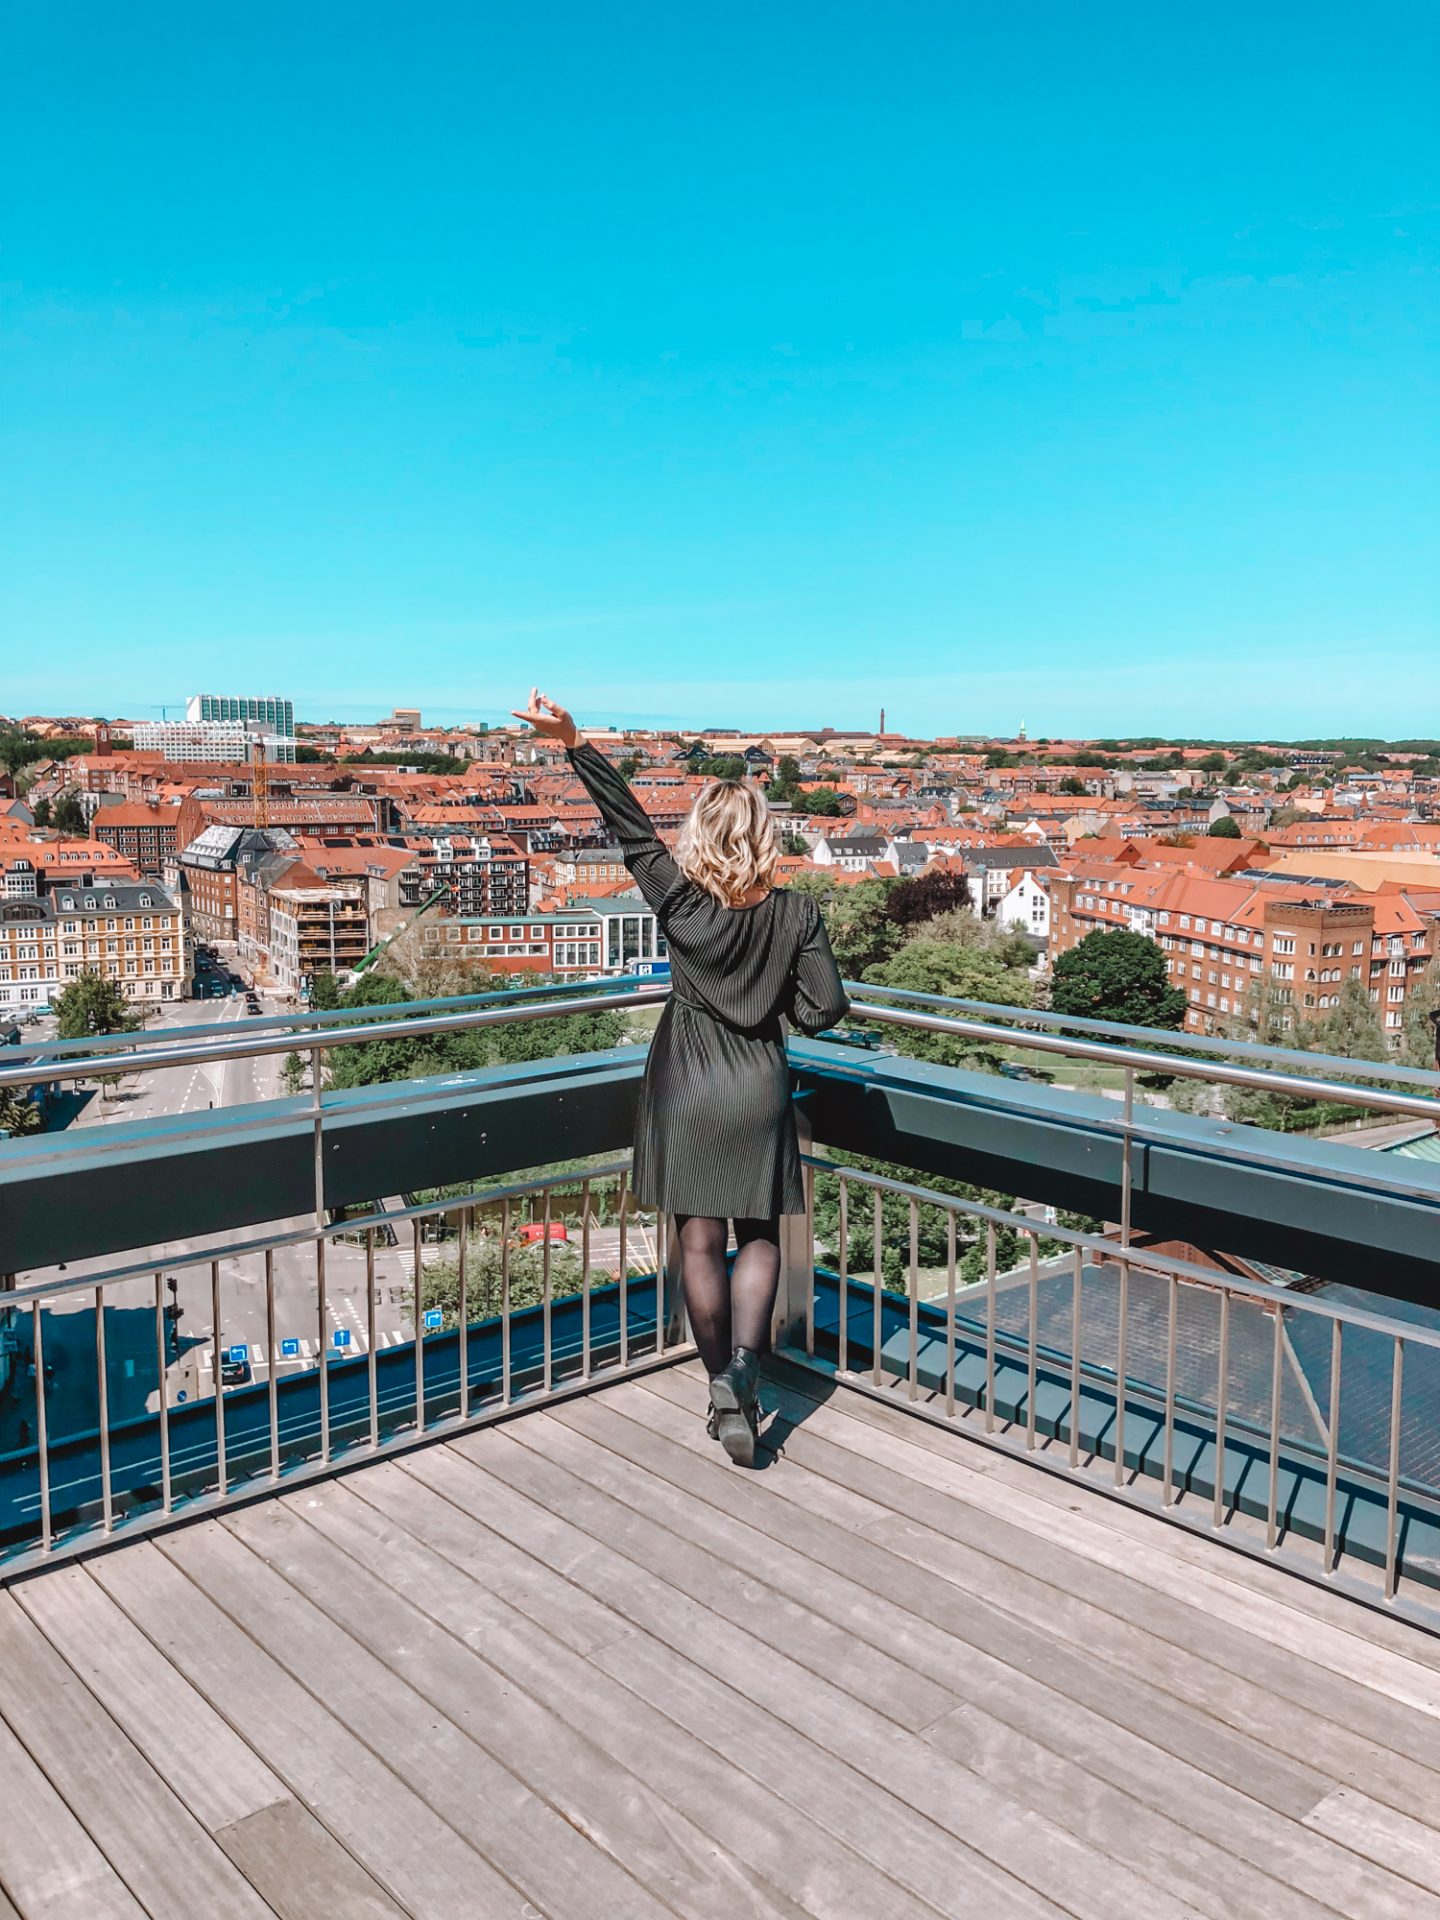 Aarhus Travel Guide: What to Do and See in 60 Hours